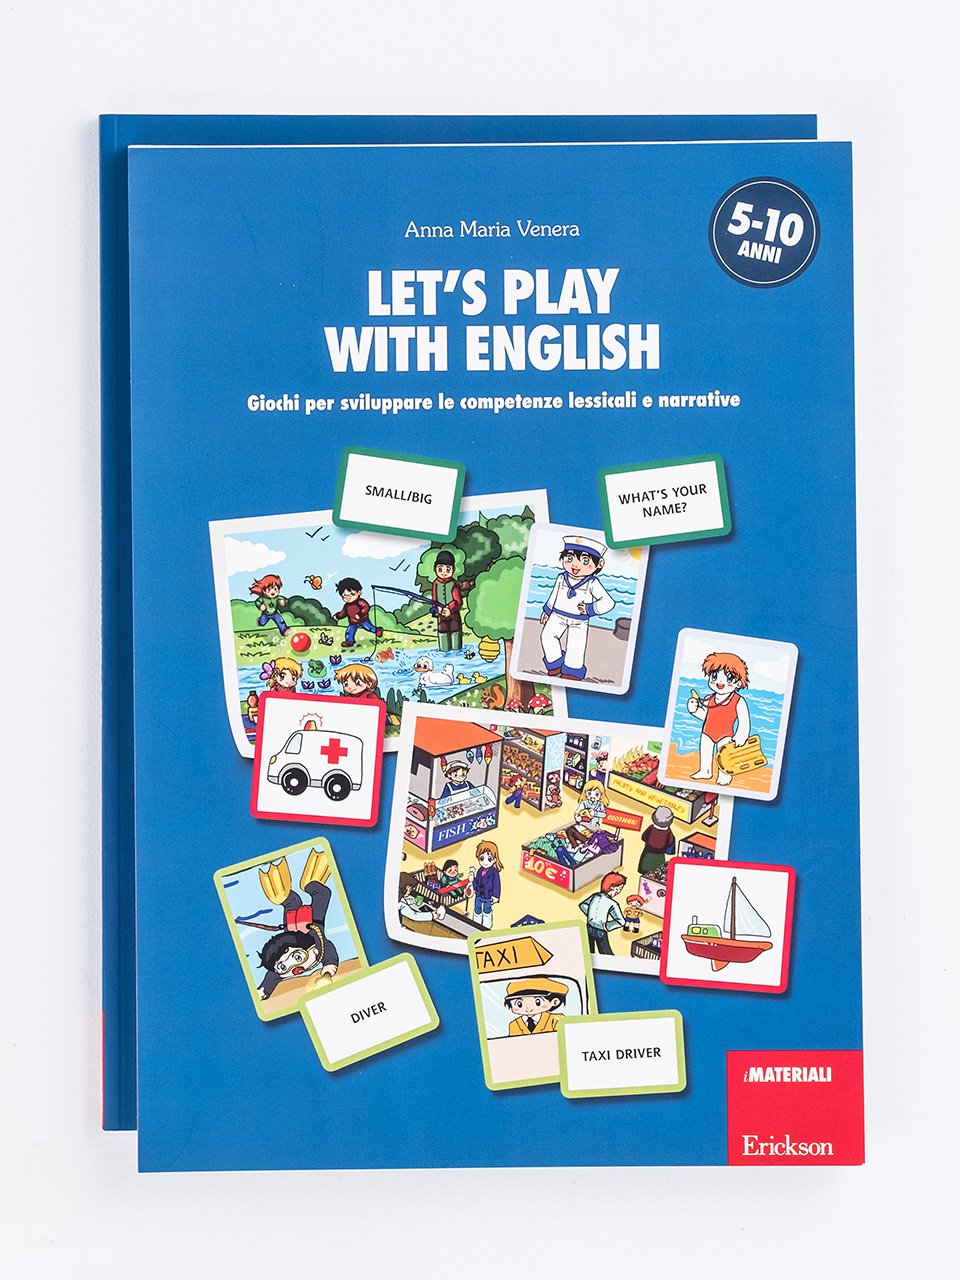 Let's play with English - Schede per Tablotto (Età 8+) - Play and Learn with - Giochi - Erickson